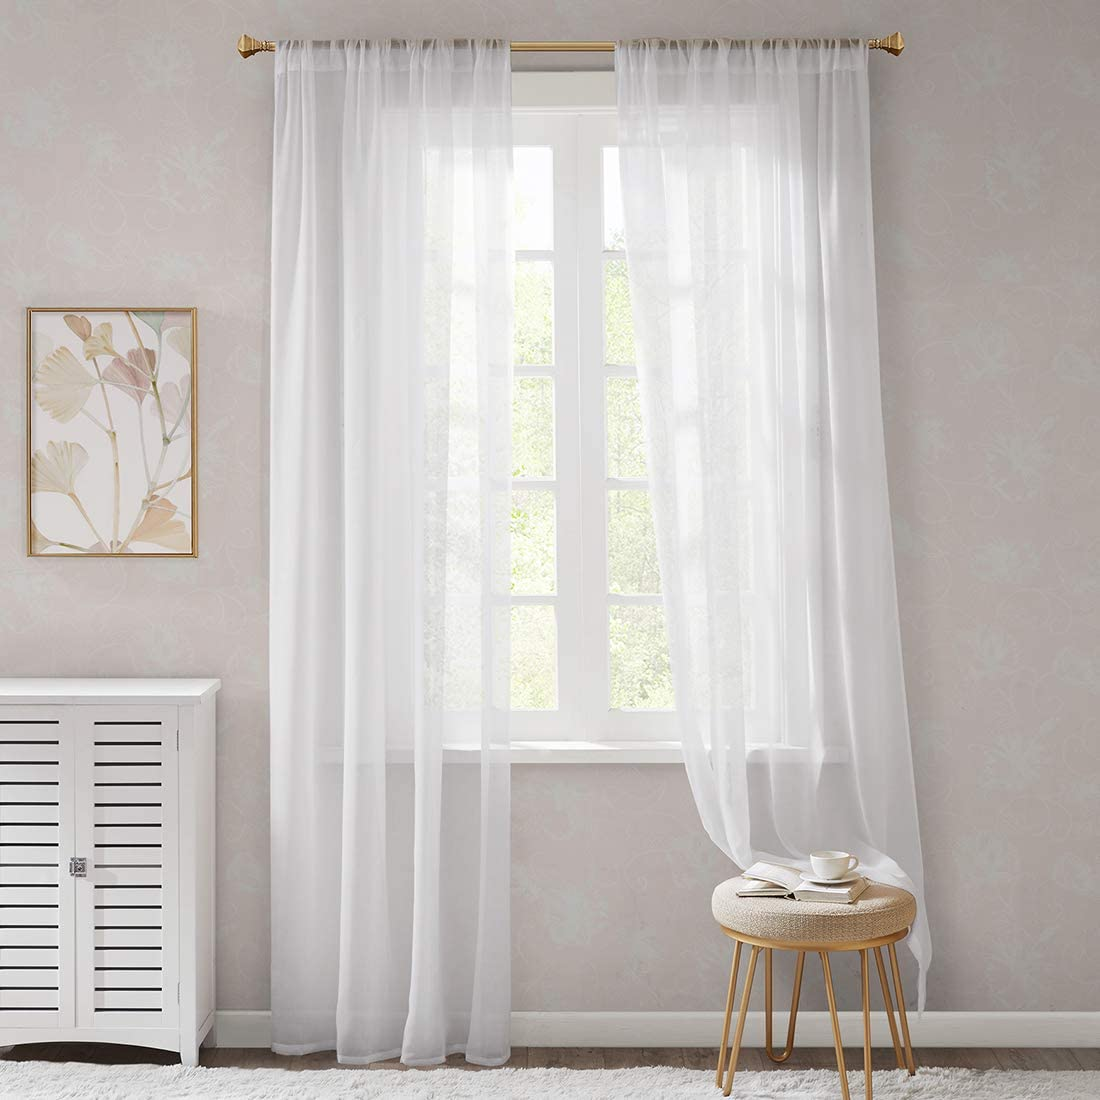 Scm Organza White Curtains Bedroom Curtain 2 Panels Classical Solid Voile Sheer High Thread With Rod Pocket White 56 W X 97 L Amazon Co Uk Kitchen Home